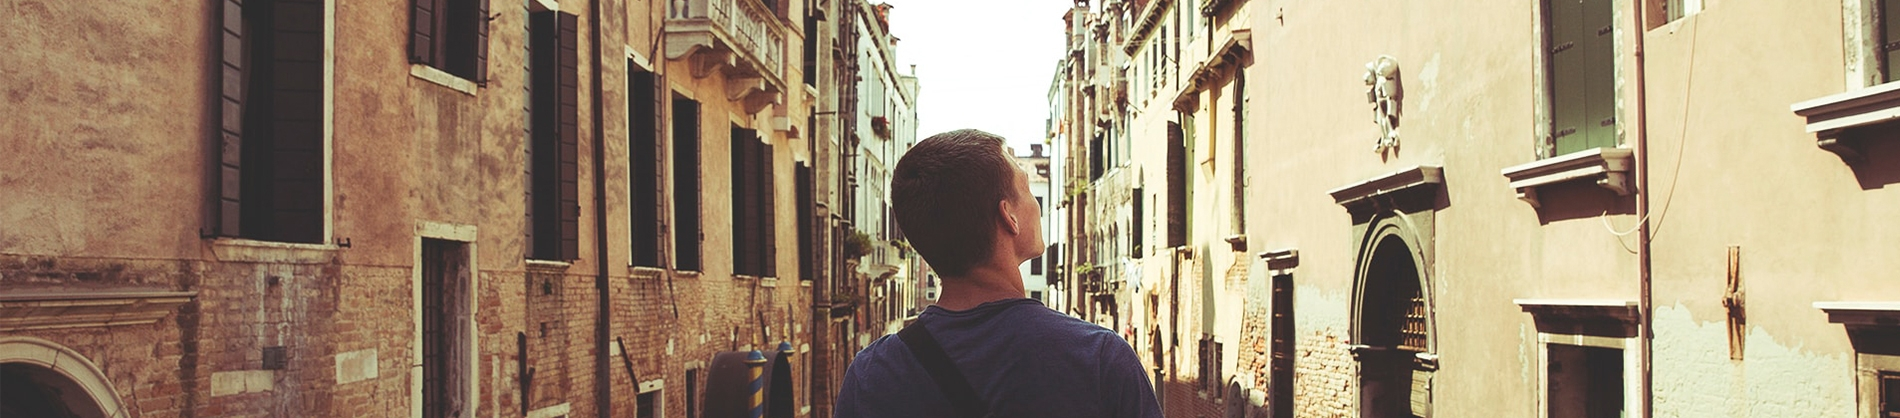 A man stood looking down a row of old buildings